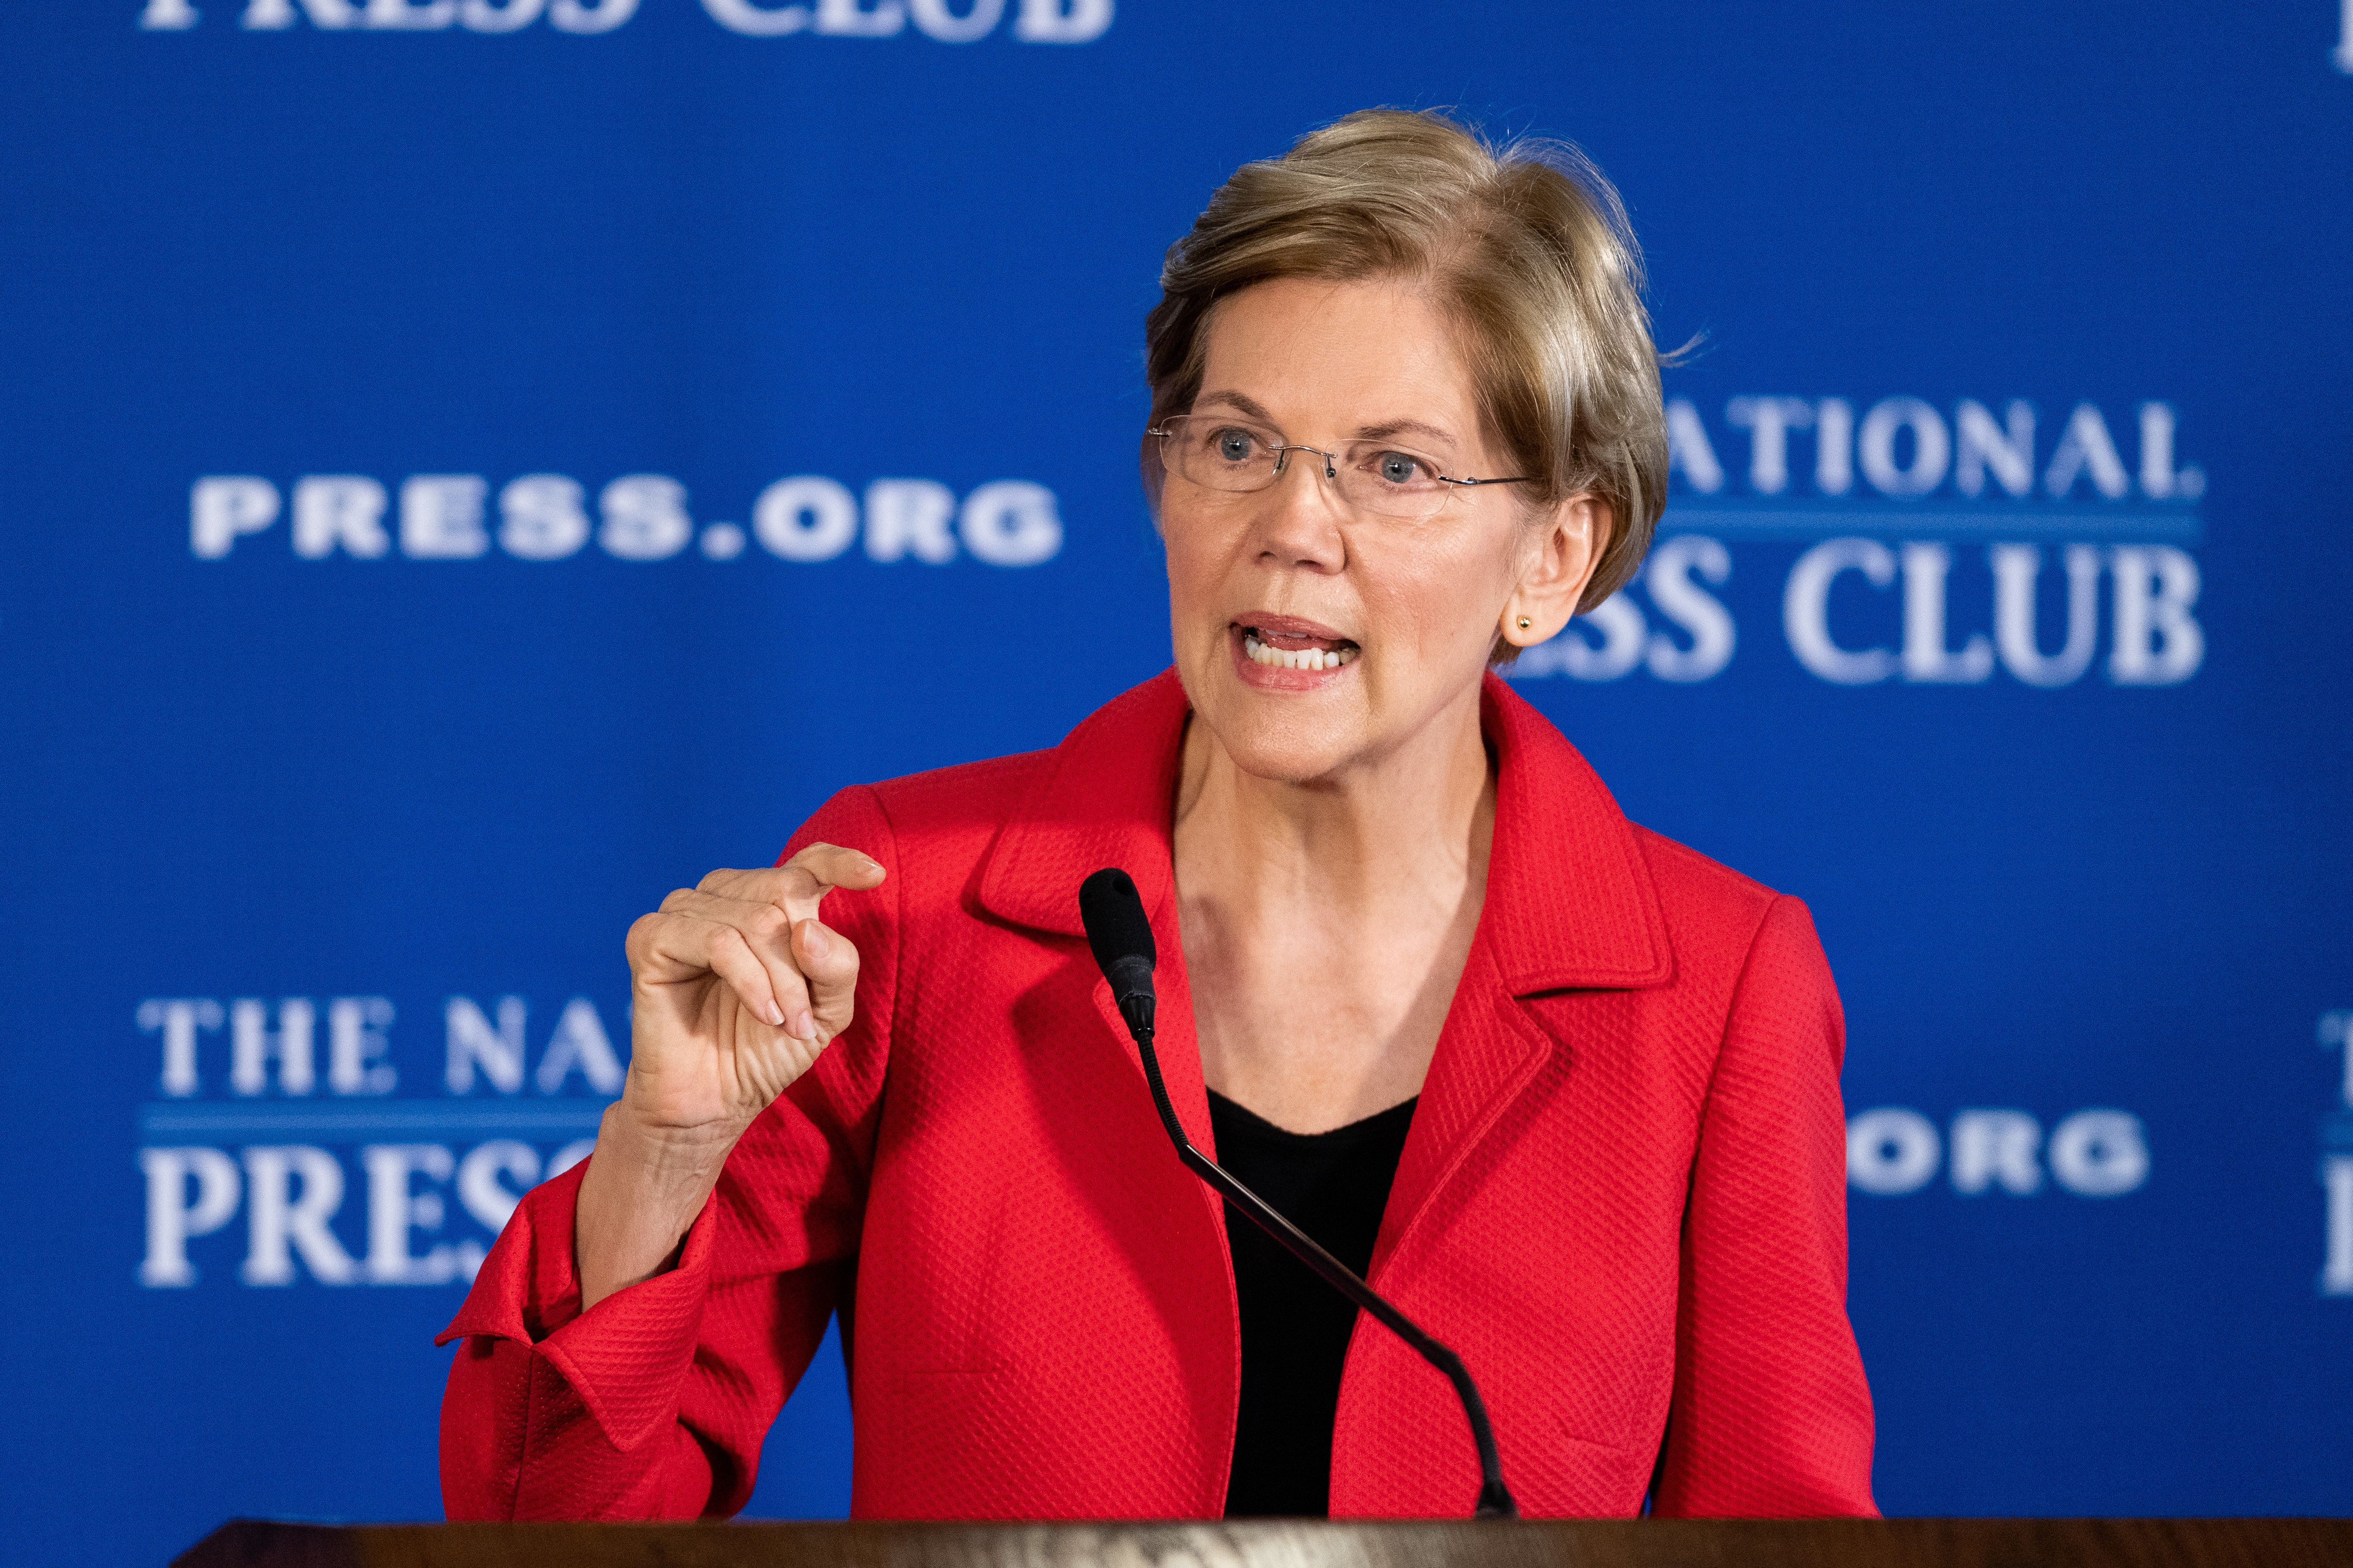 WASHINGTON, DC, UNITED STATES - 2018/08/21: Senator Elizabeth Warren (D-MA) seen speaking about her proposed Anti-Corruption and Public Integrity Act at the National Press Club. (Photo by Michael Brochstein/SOPA Images/LightRocket via Getty Images)